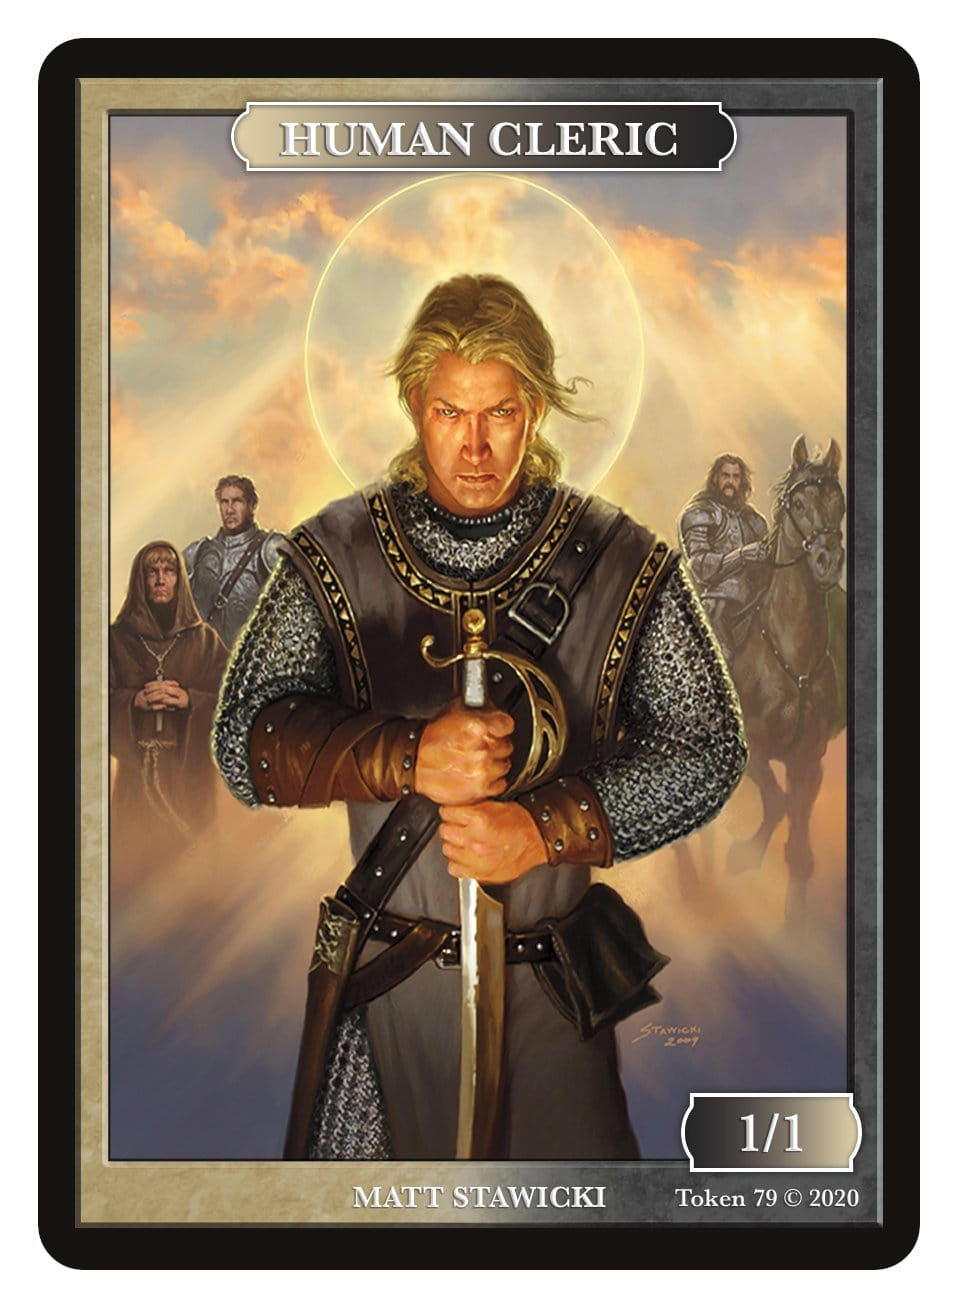 Human Cleric Token (1/1) by Matt Stawicki